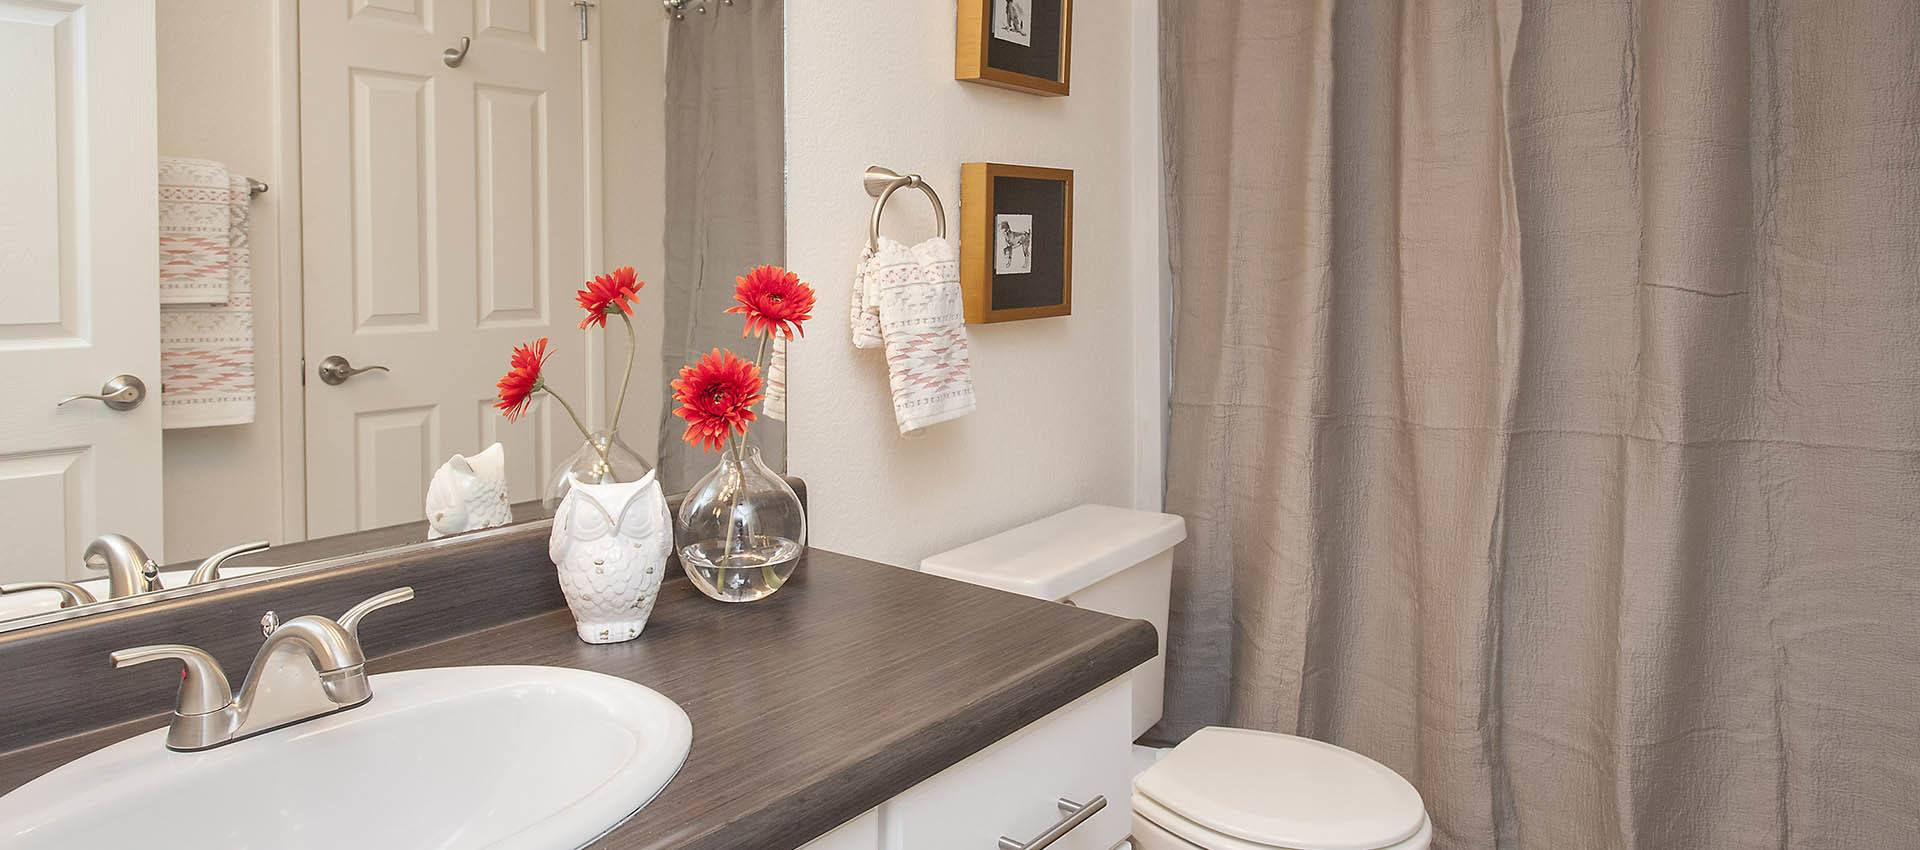 Nicely Decorated Bathroom at Hidden Lake Condominium Rentals in Sacramento, CA